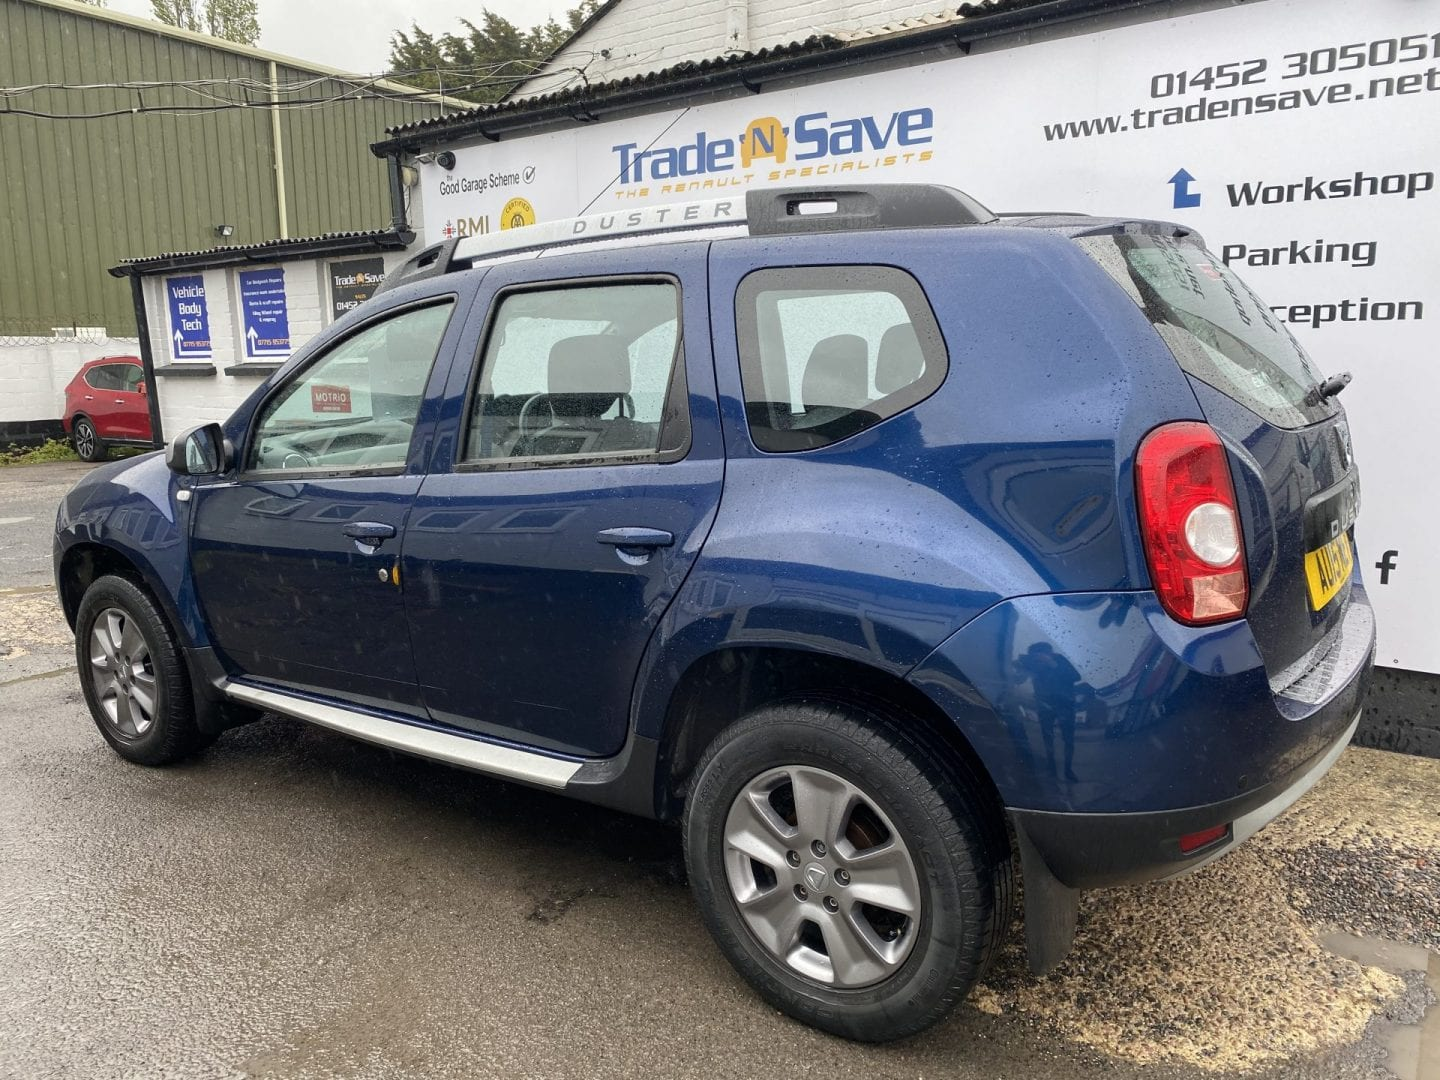 gloucester-approved-dacia